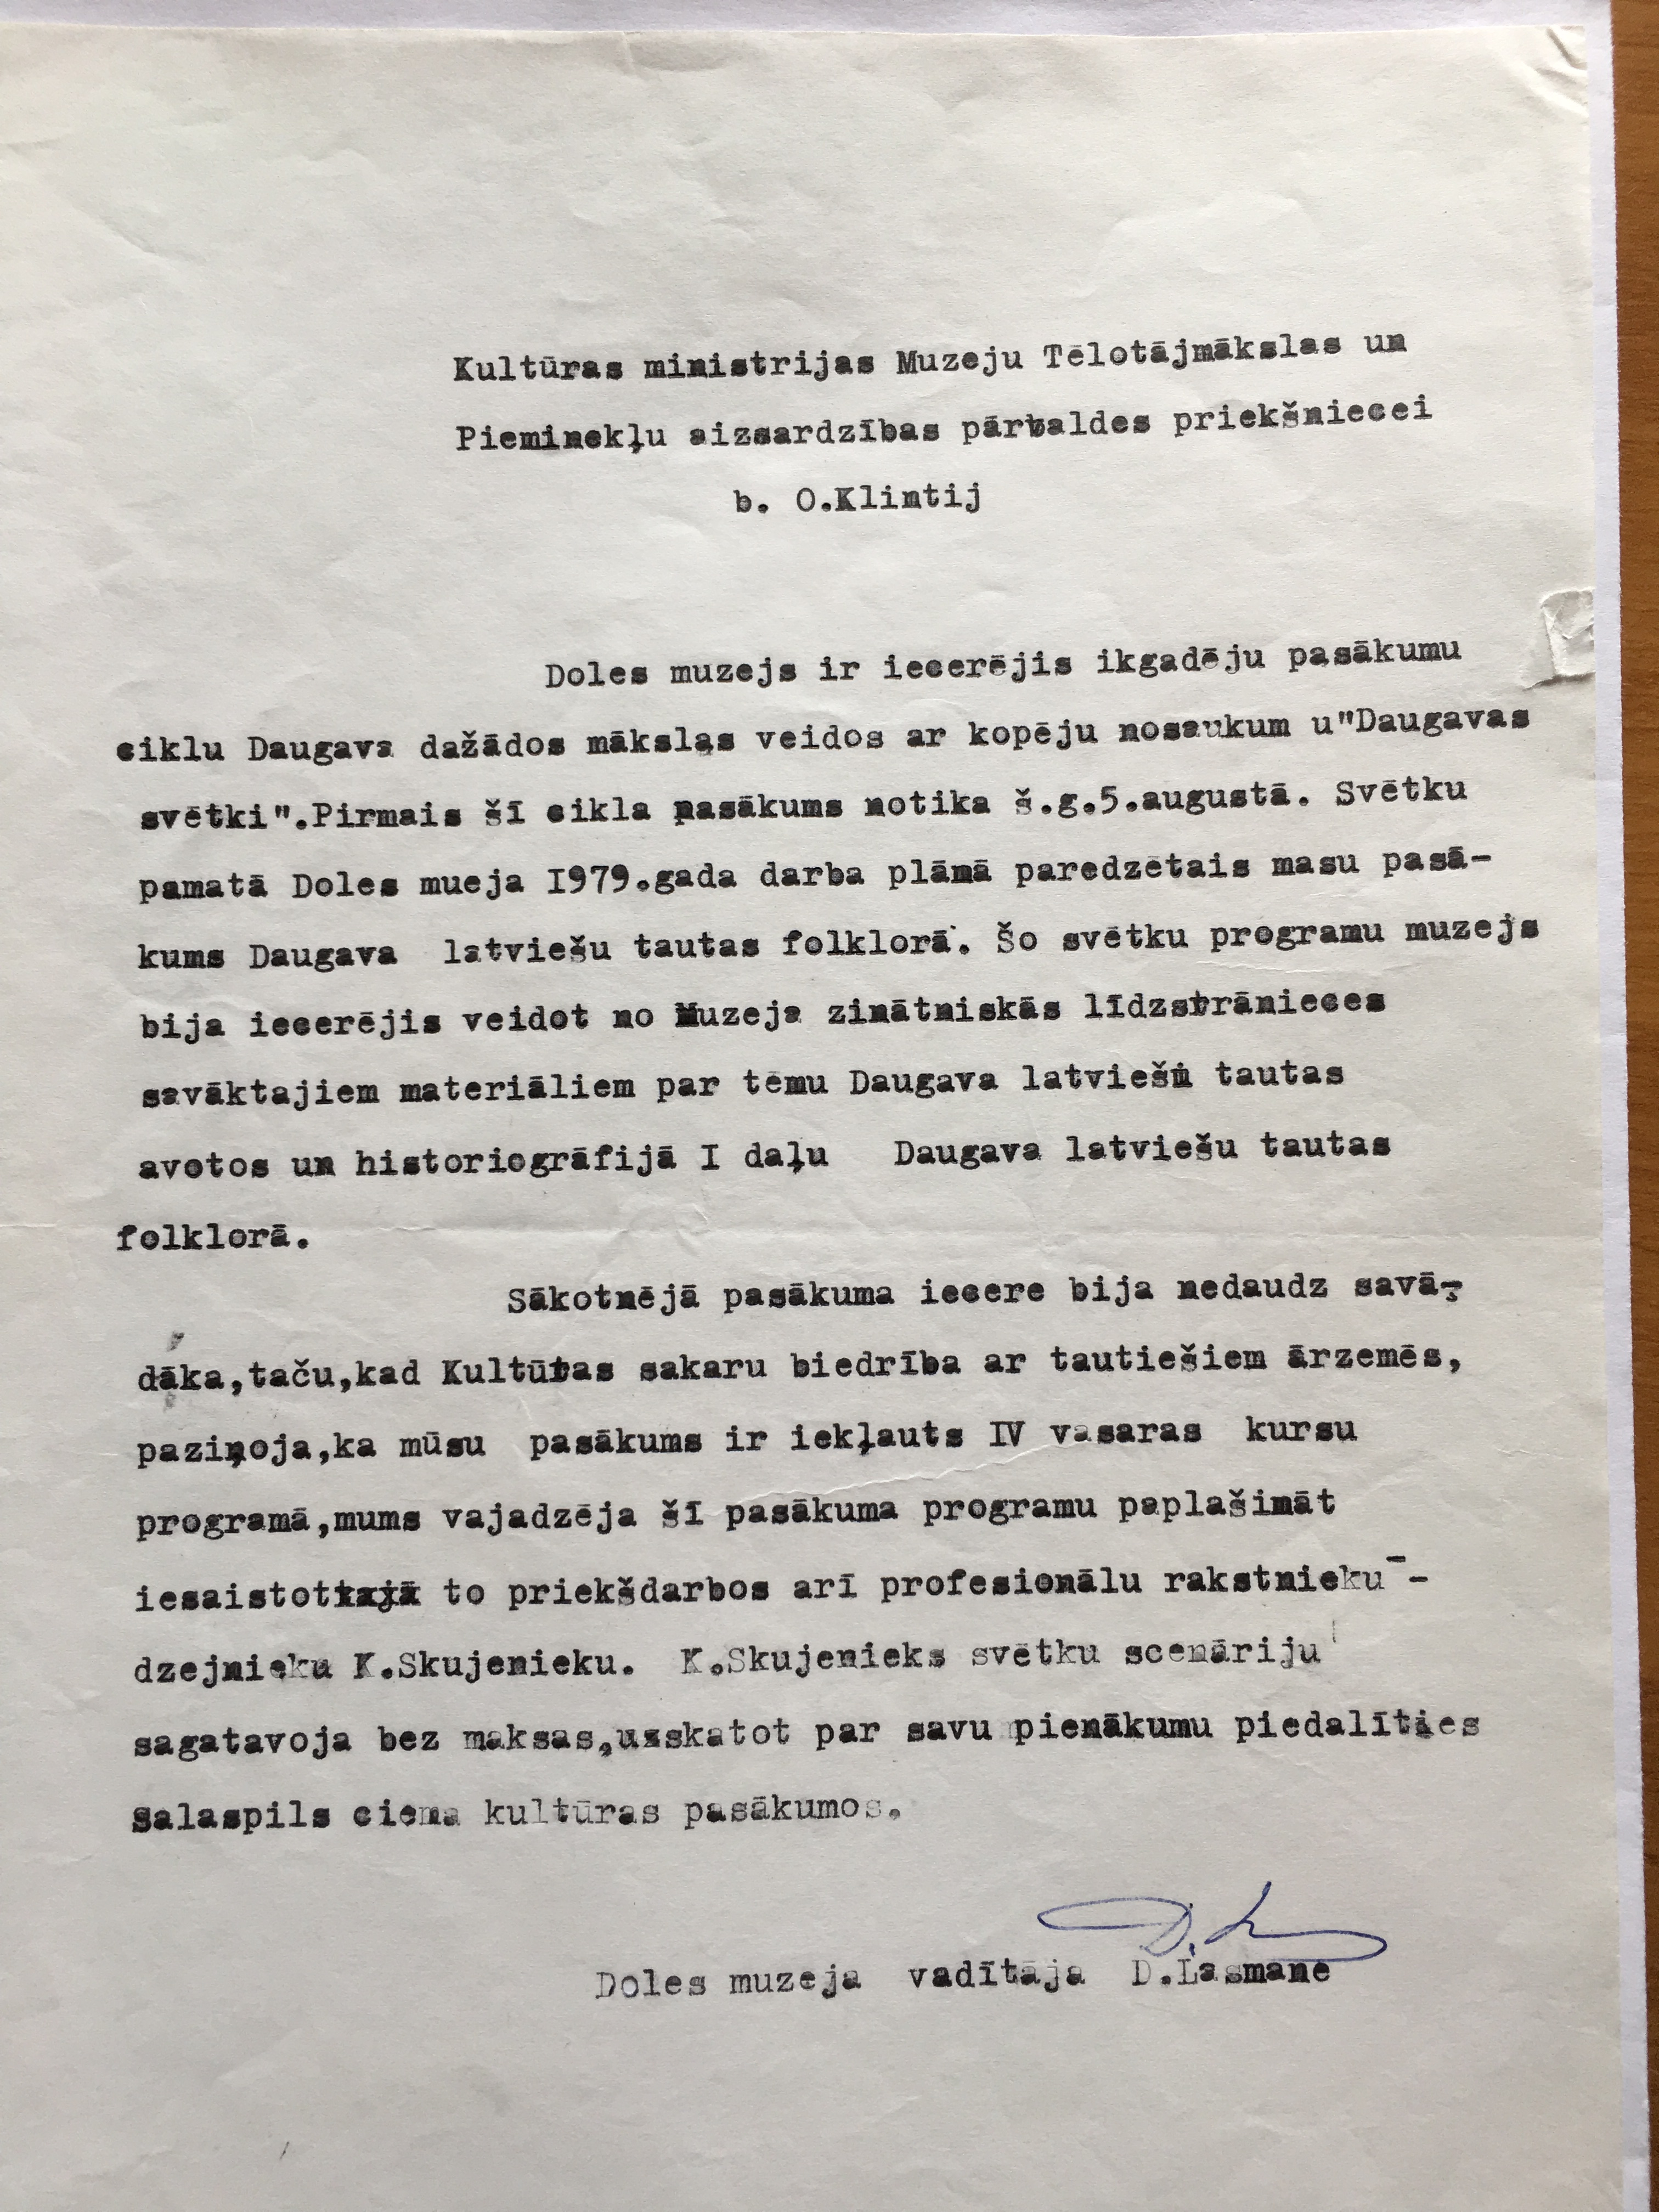 Explanation letter of director of the Dole History Museum Daina Lasmane to the official of the Latvian SSR Ministry of Culture about the First River Daugava Festivity in 1979